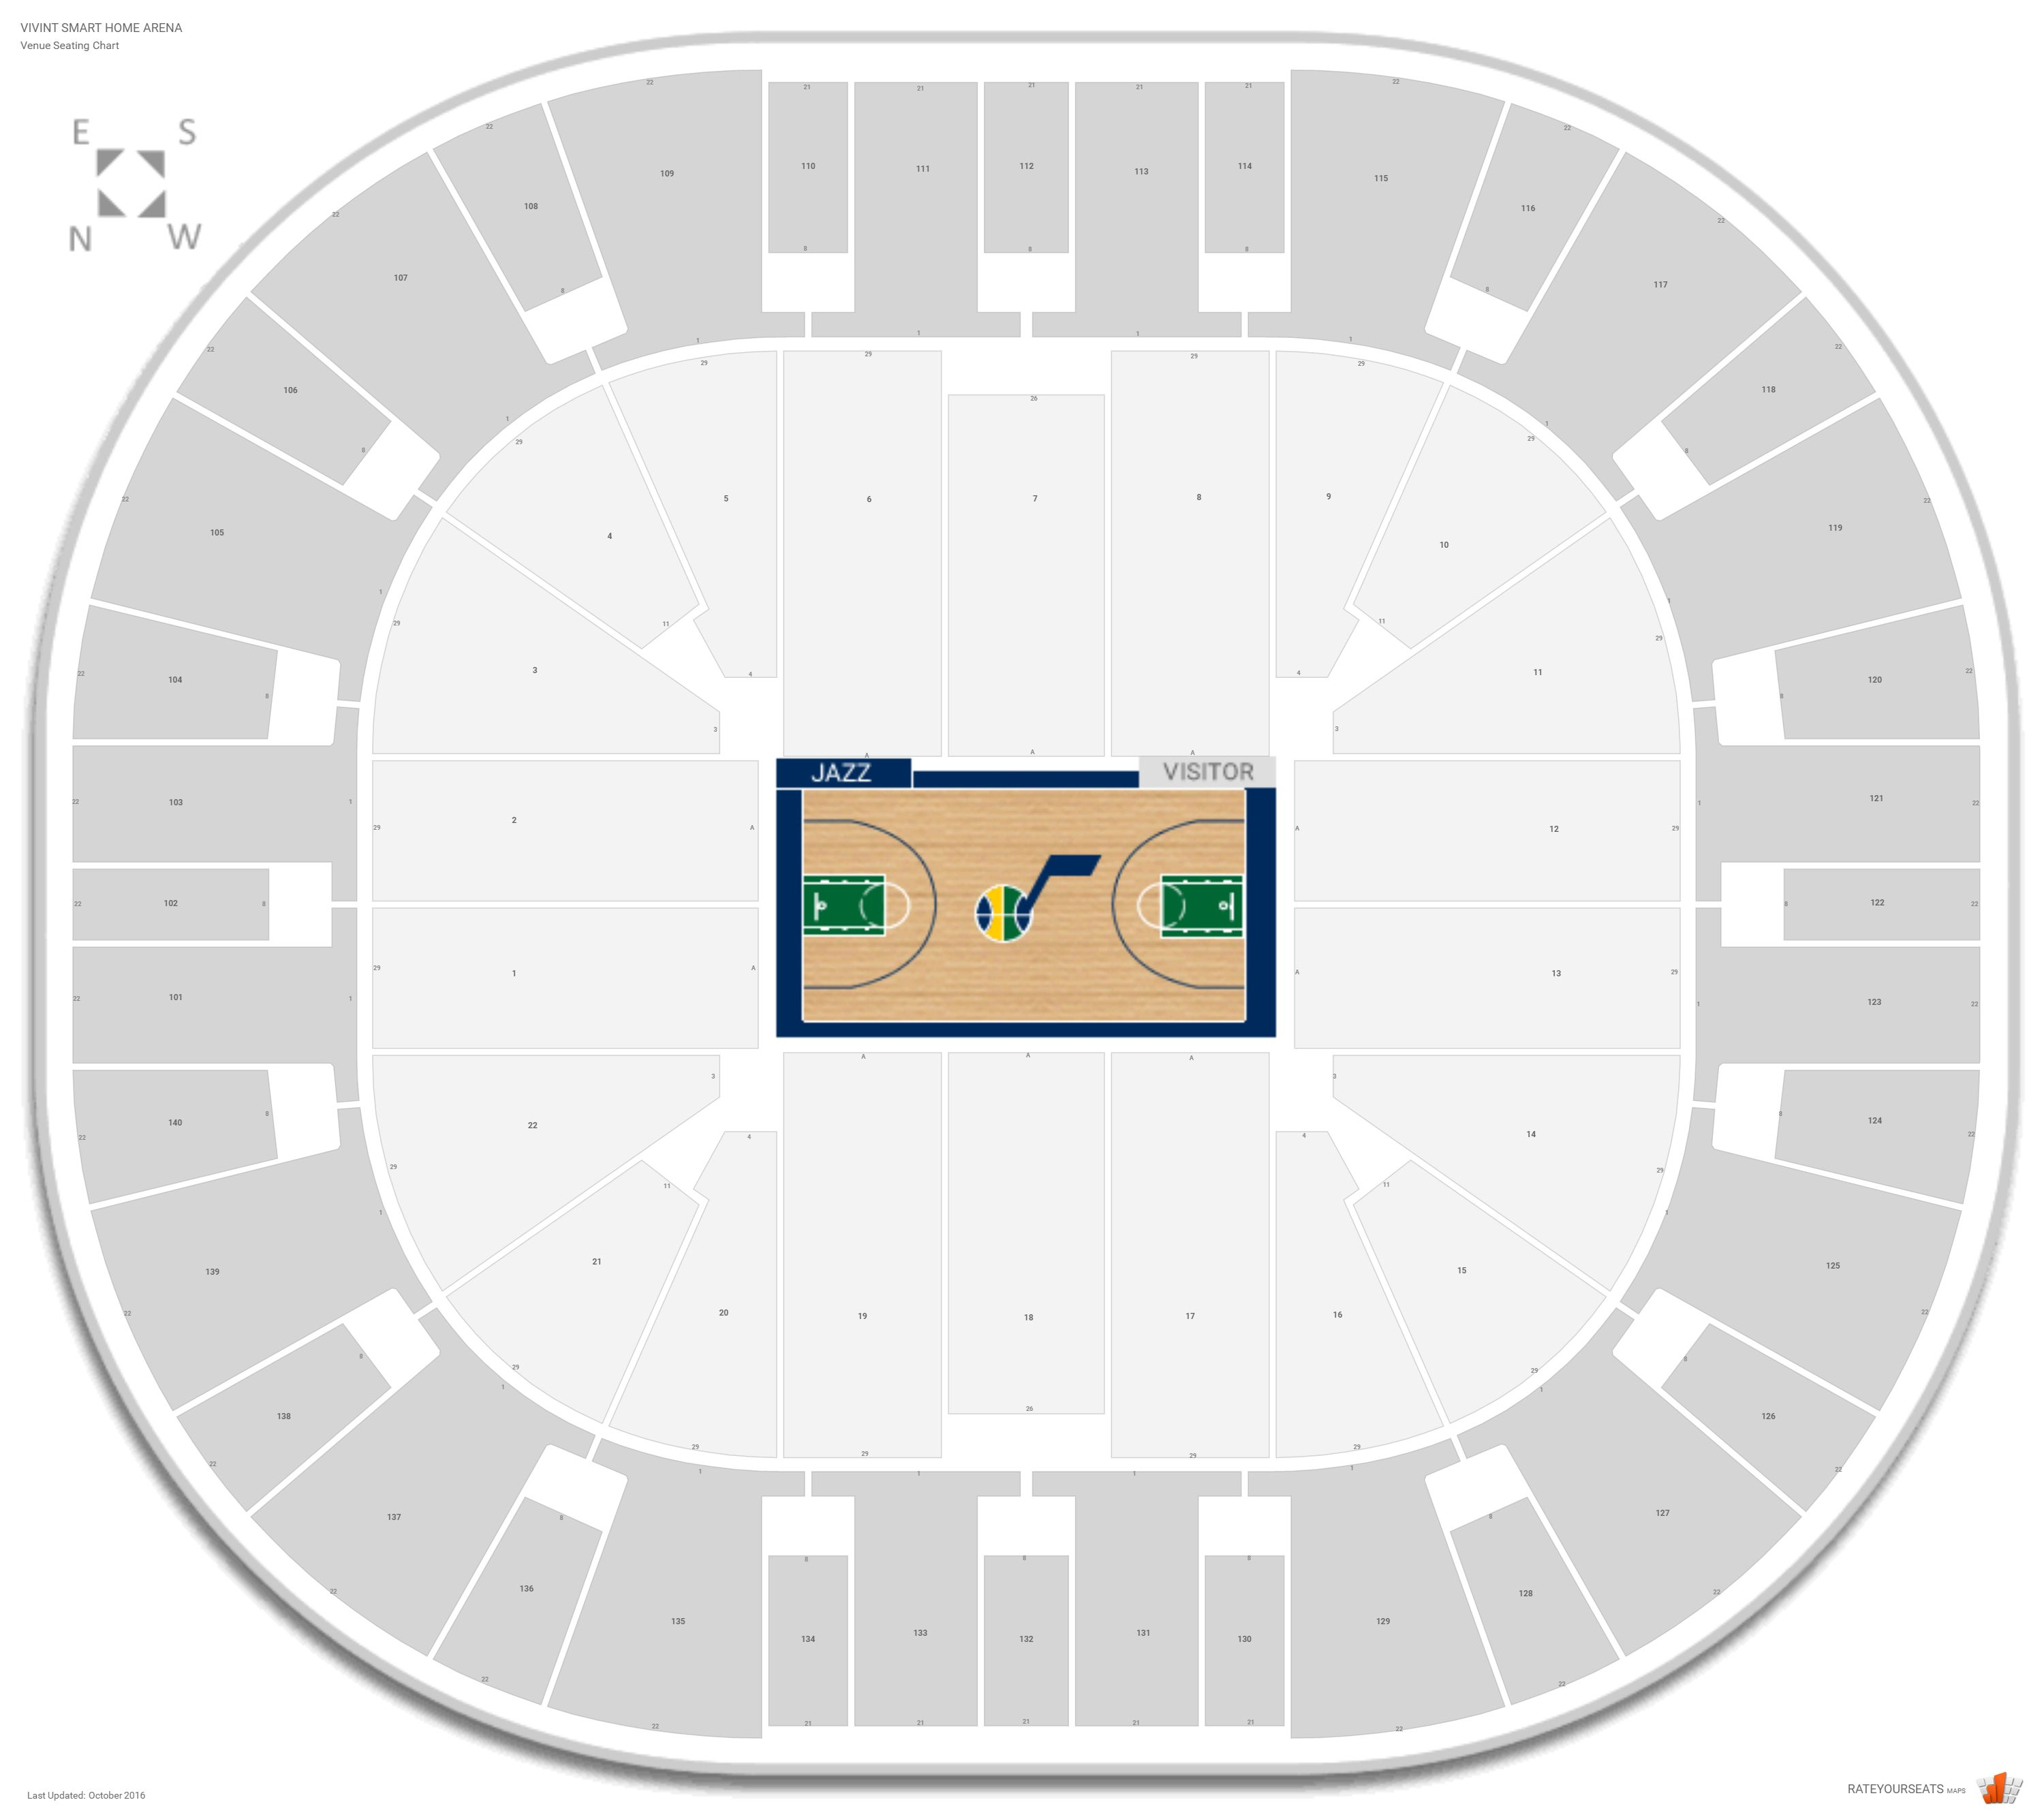 Vivint Smart Home Arena Seating Chart With Row Numbers